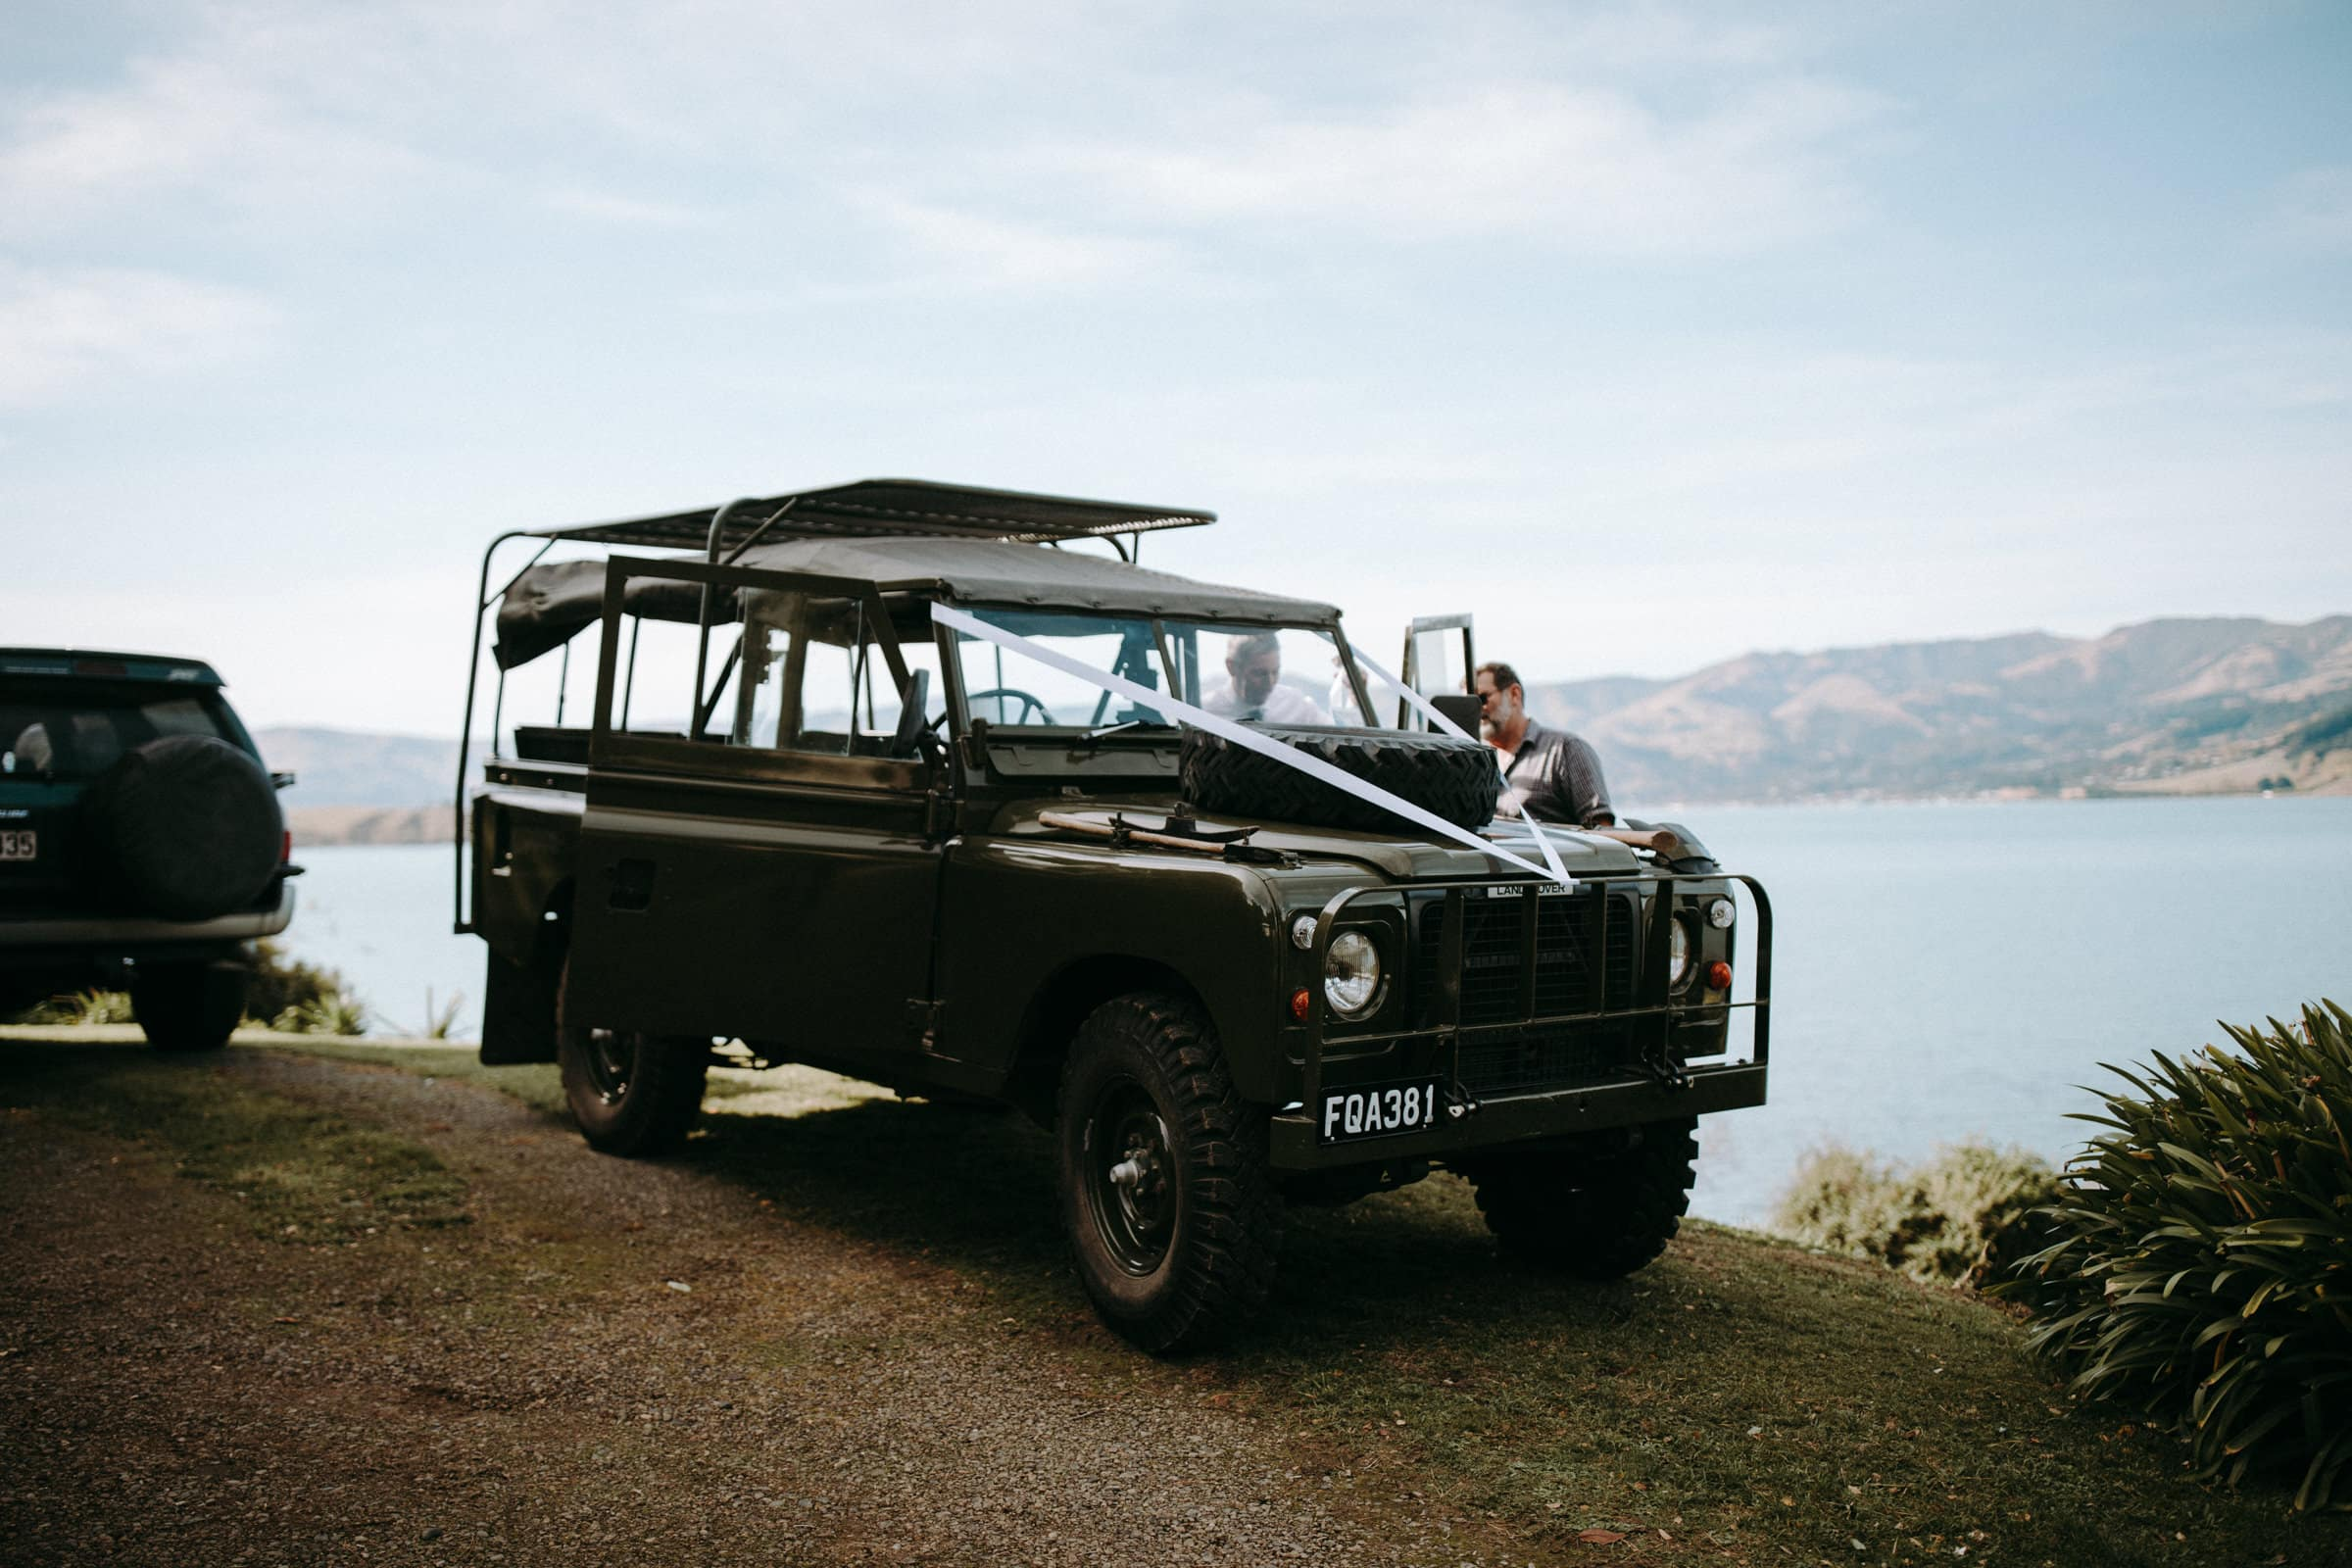 A Land Rover is decorated with white band and is standing next to a lake.